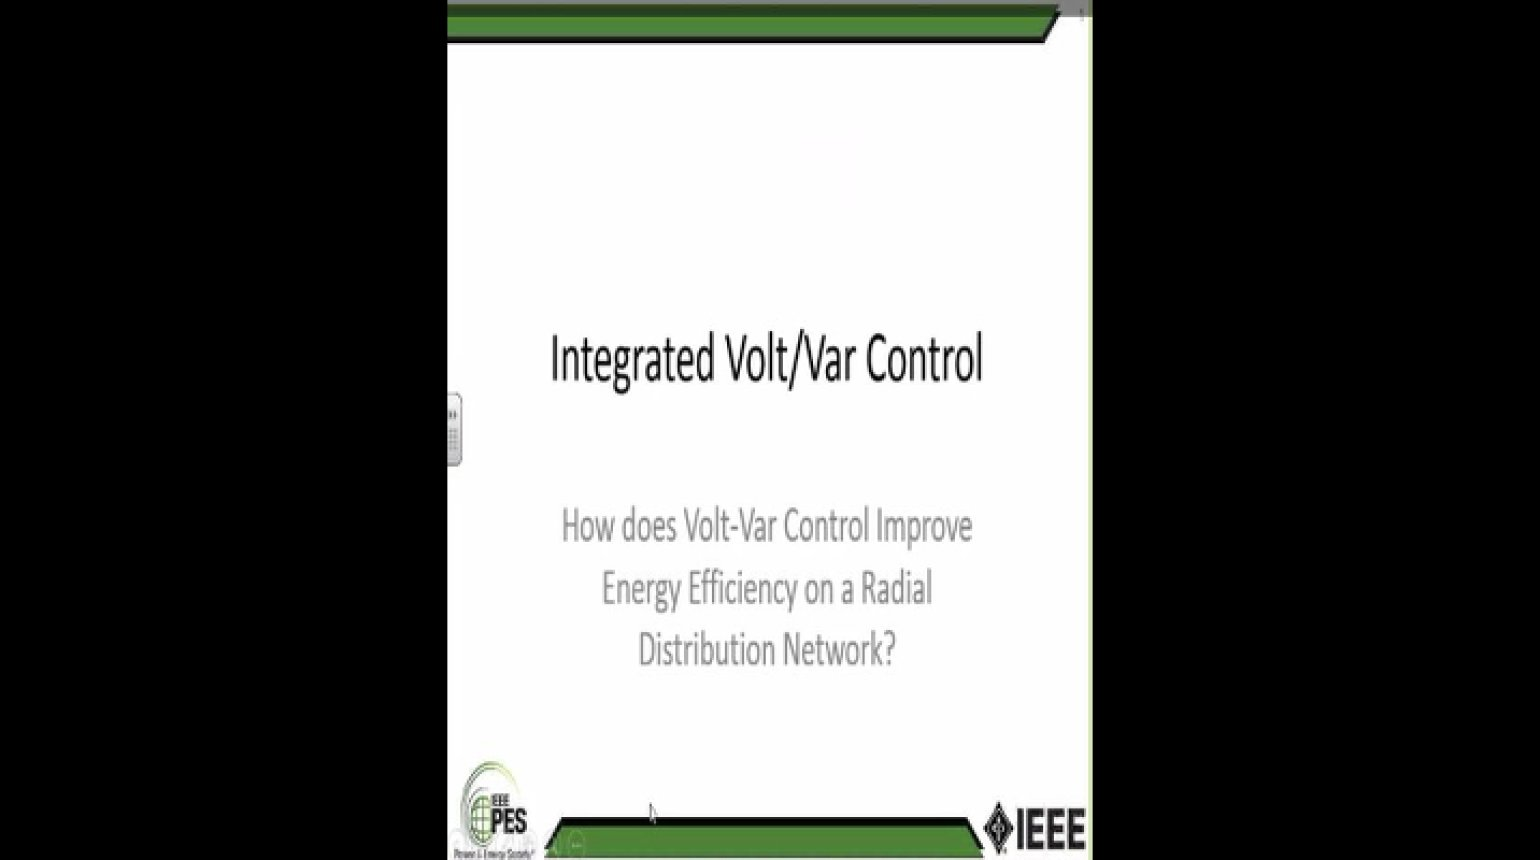 How Does Volt-var Control Improve Energy Efficiency on a Radical Distribution Network?